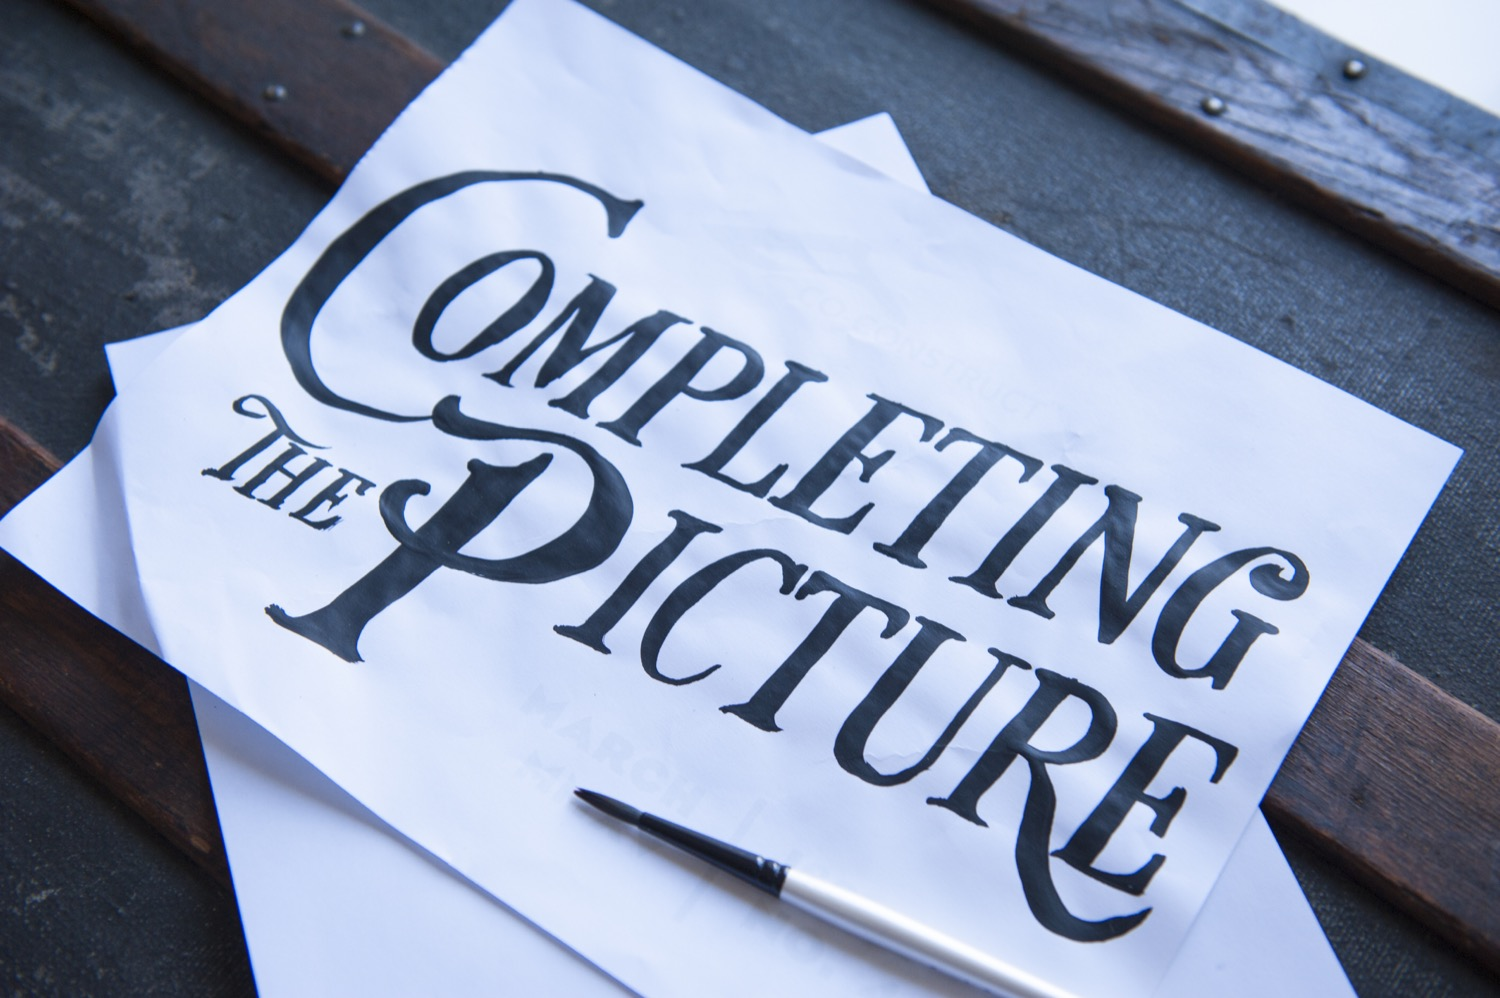 Co-Construct-Completing-the-Picture-2.jpg